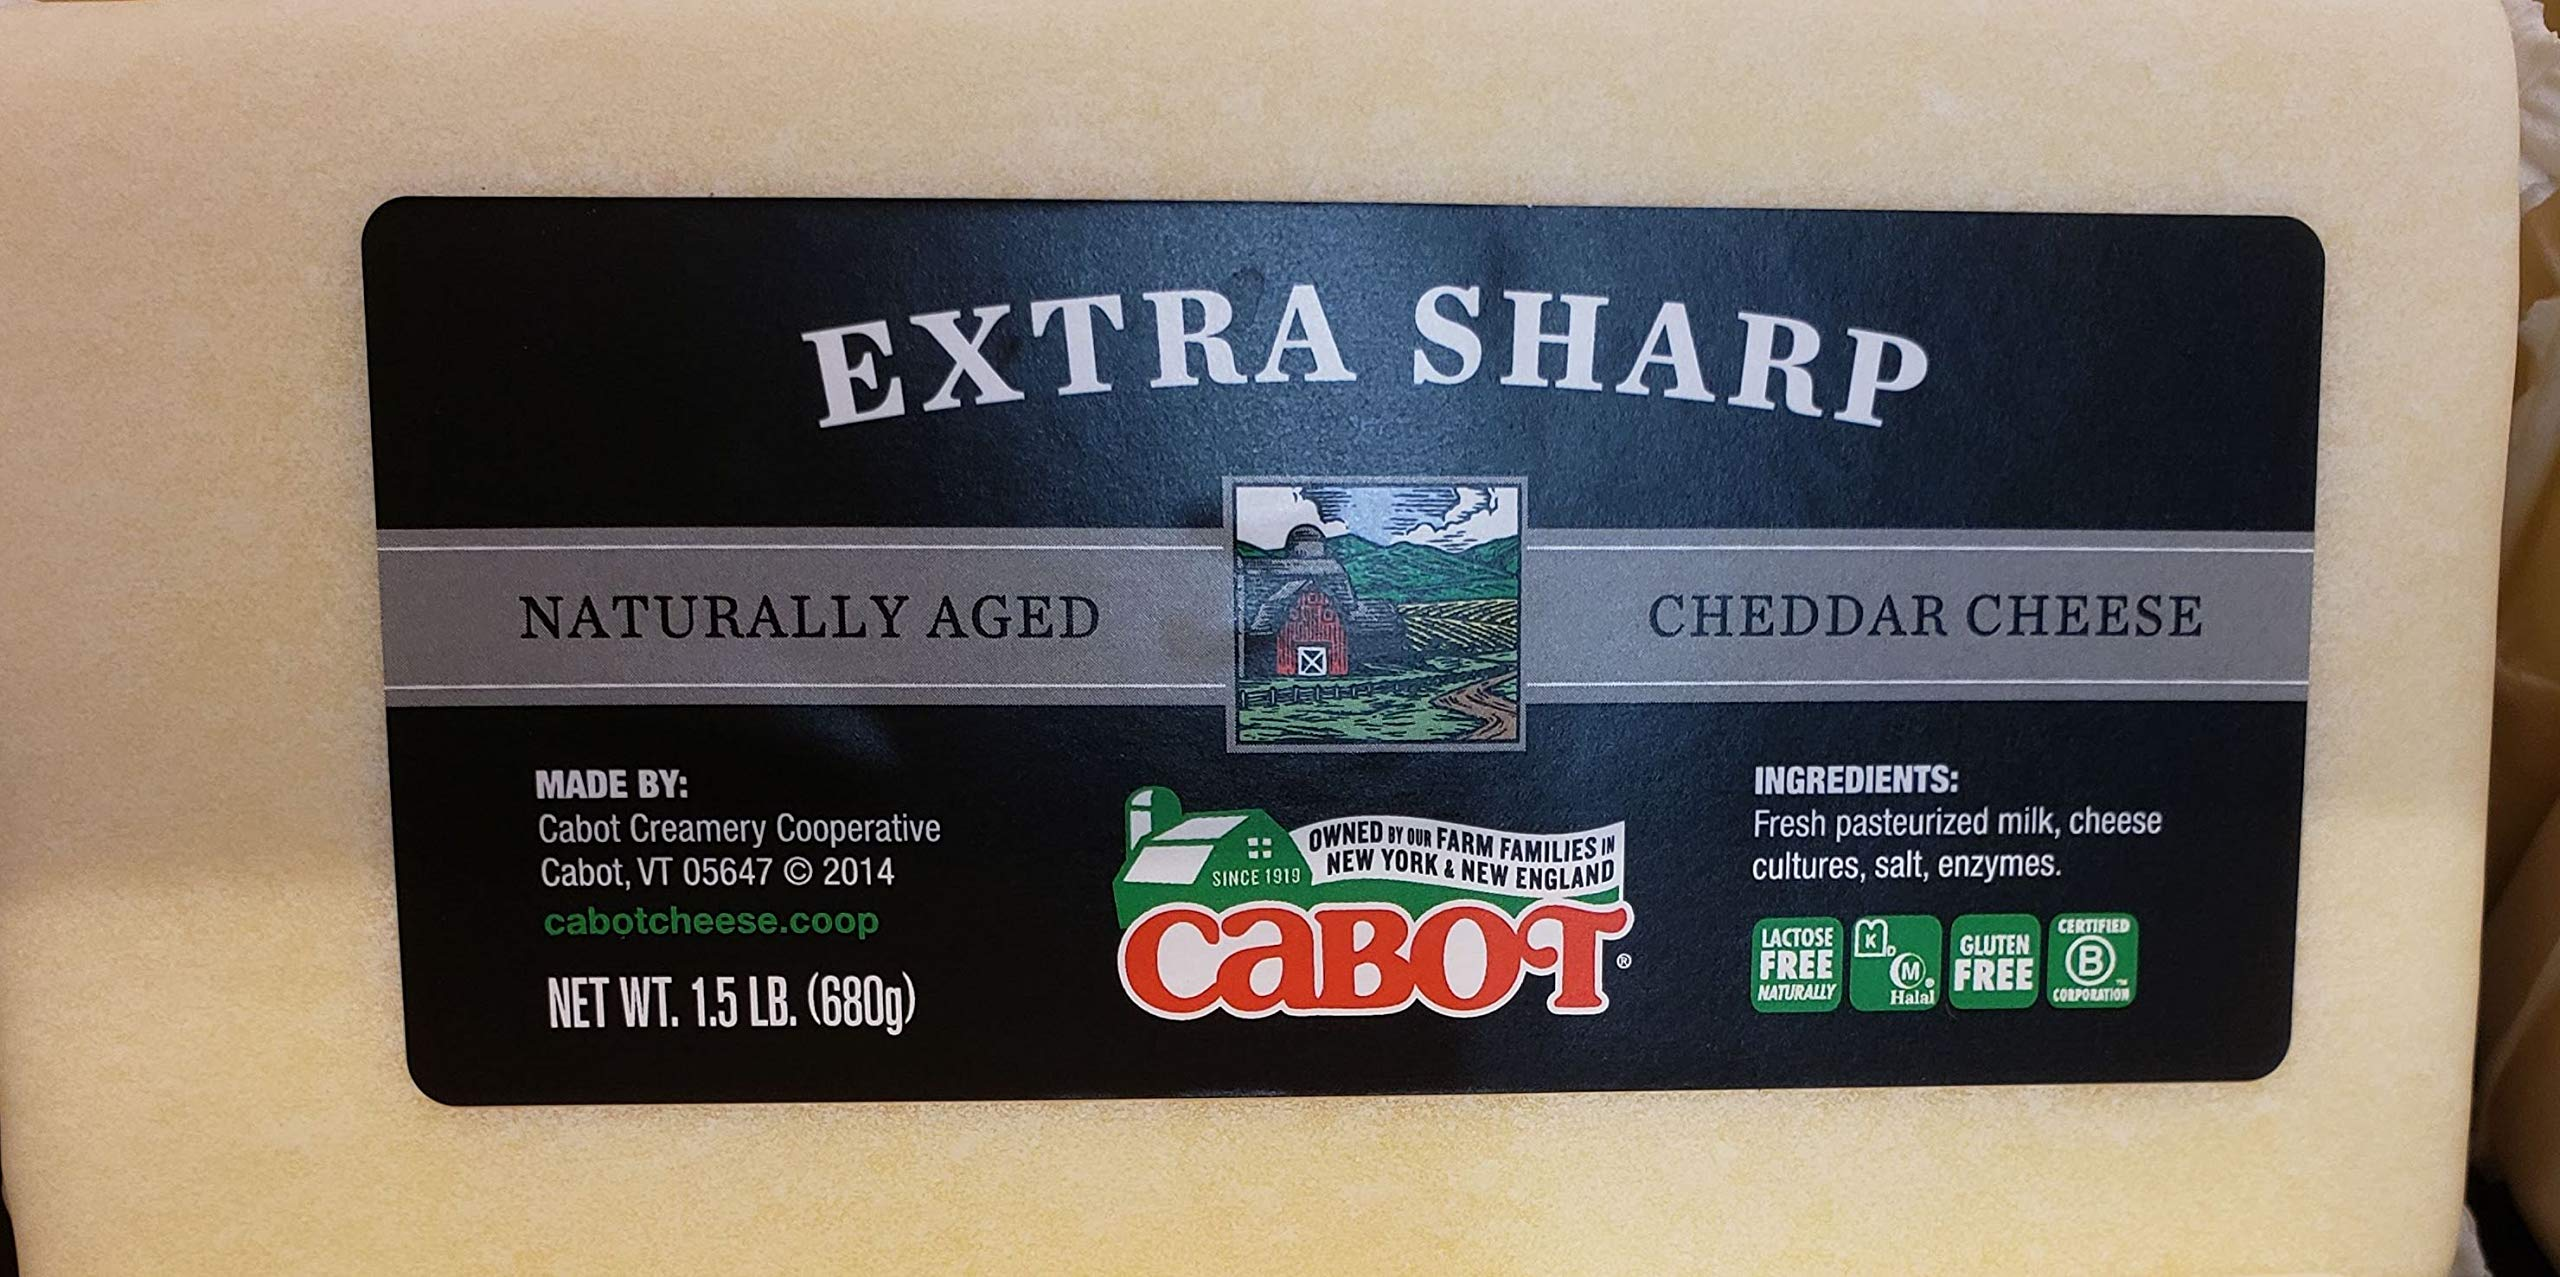 Cabot Extra Sharp naturally aged cheddar cheese 1.5lb (pack of 2)